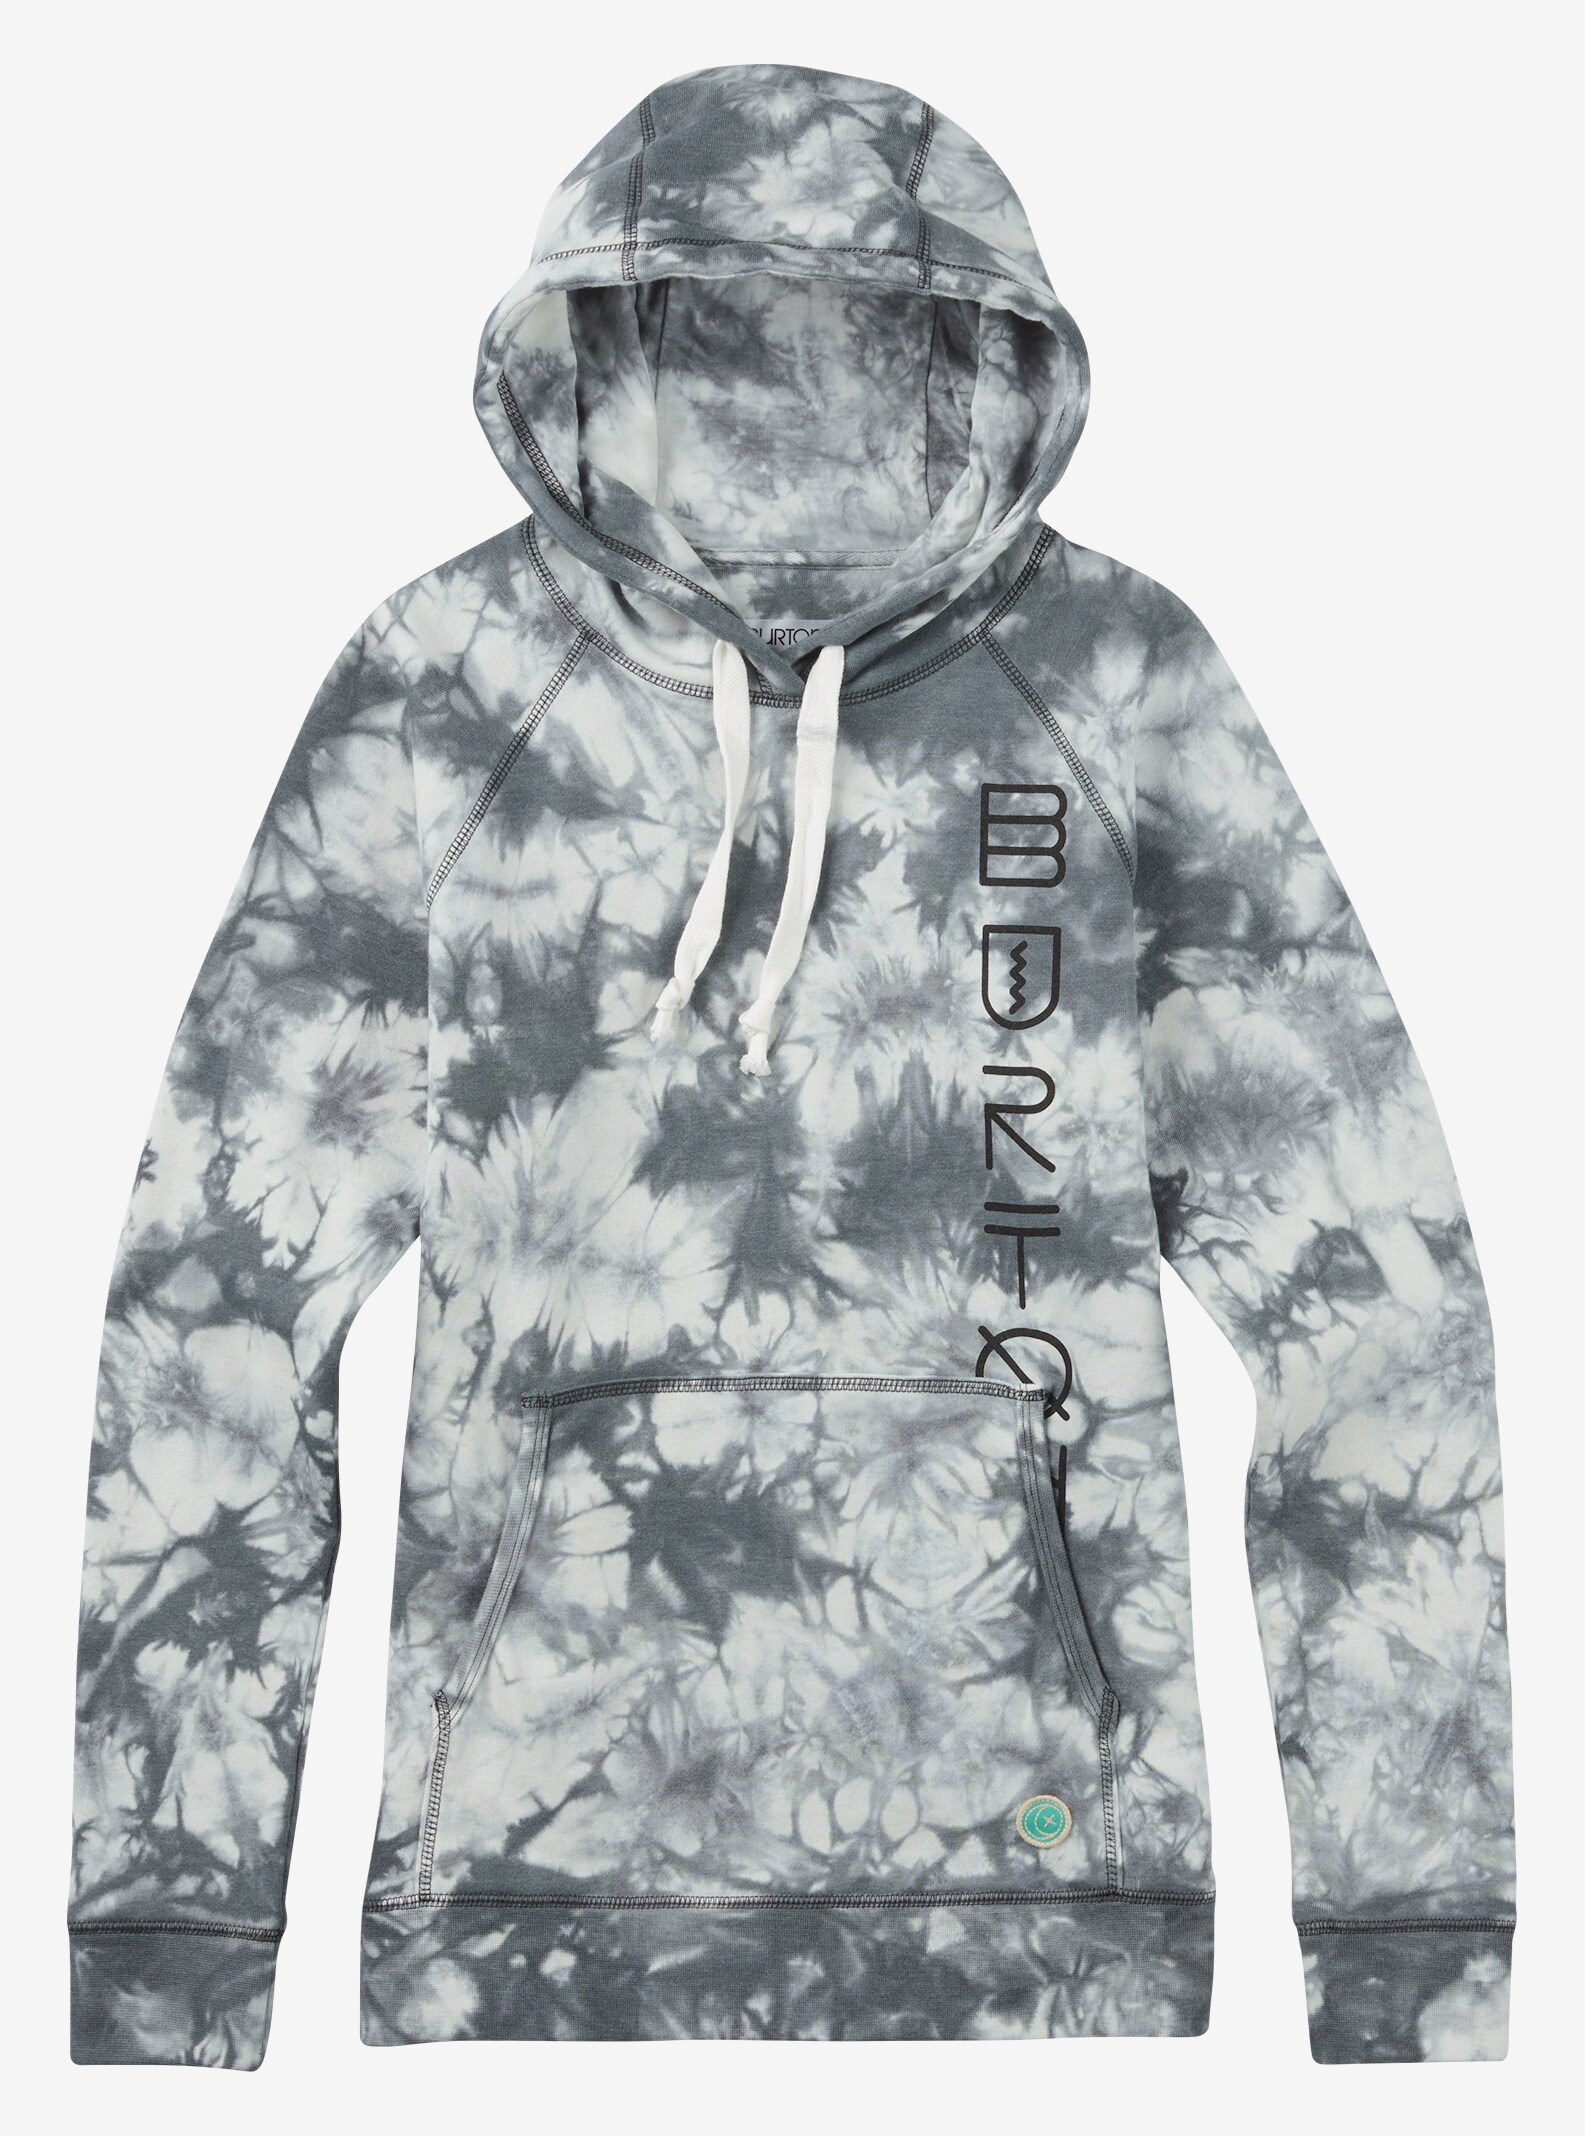 Burton Infinity Pullover Hoodie shown in True Black Tie Dye